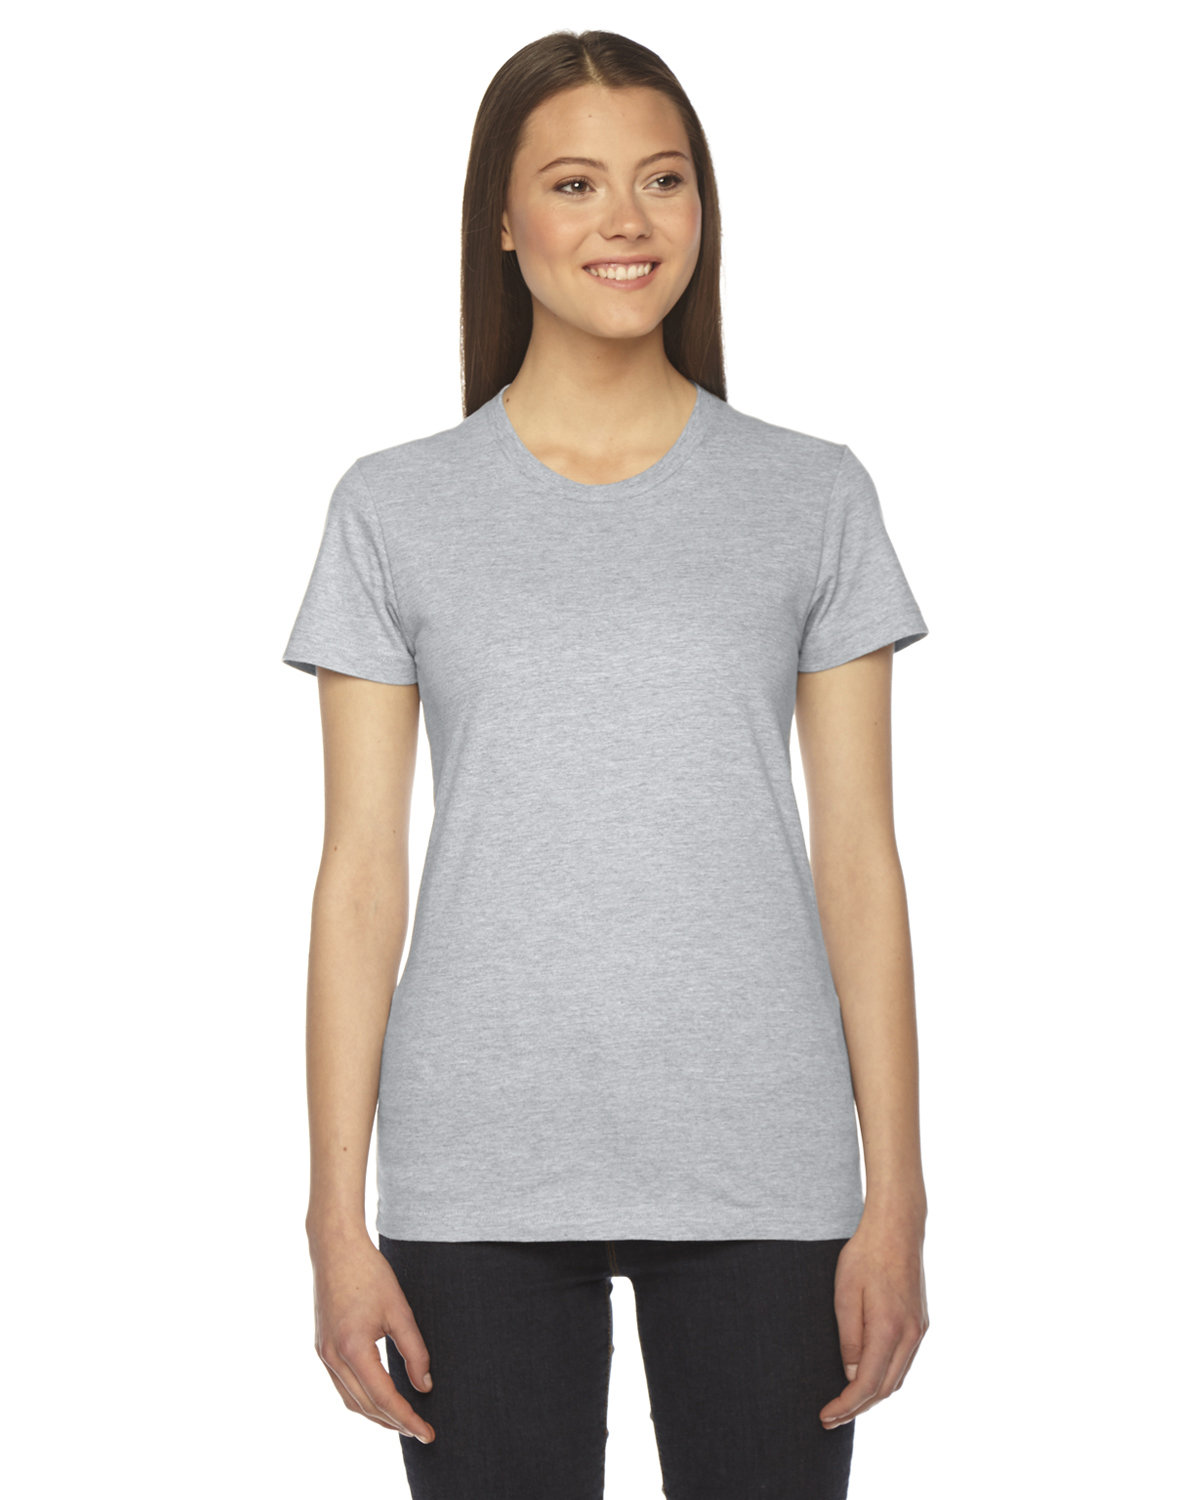 American Apparel Ladies' Fine Jersey Short-Sleeve T-Shirt HEATHER GREY